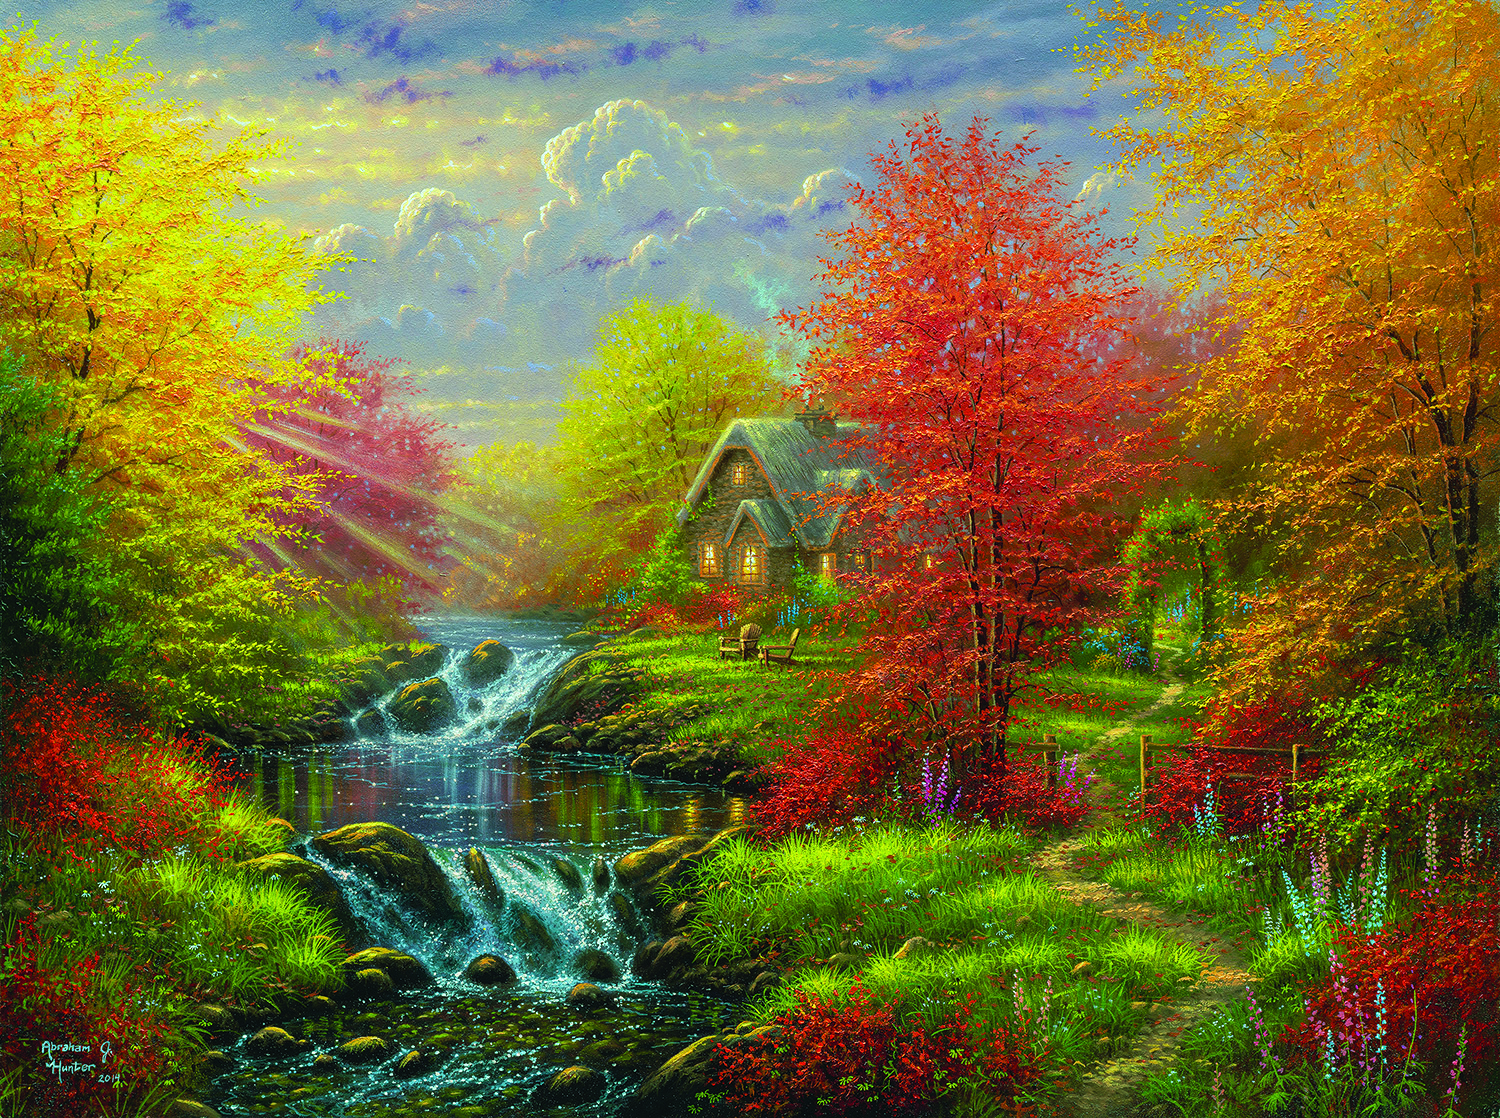 Secluded Cottage 1000 pc Jigsaw Puzzle by SunsOut